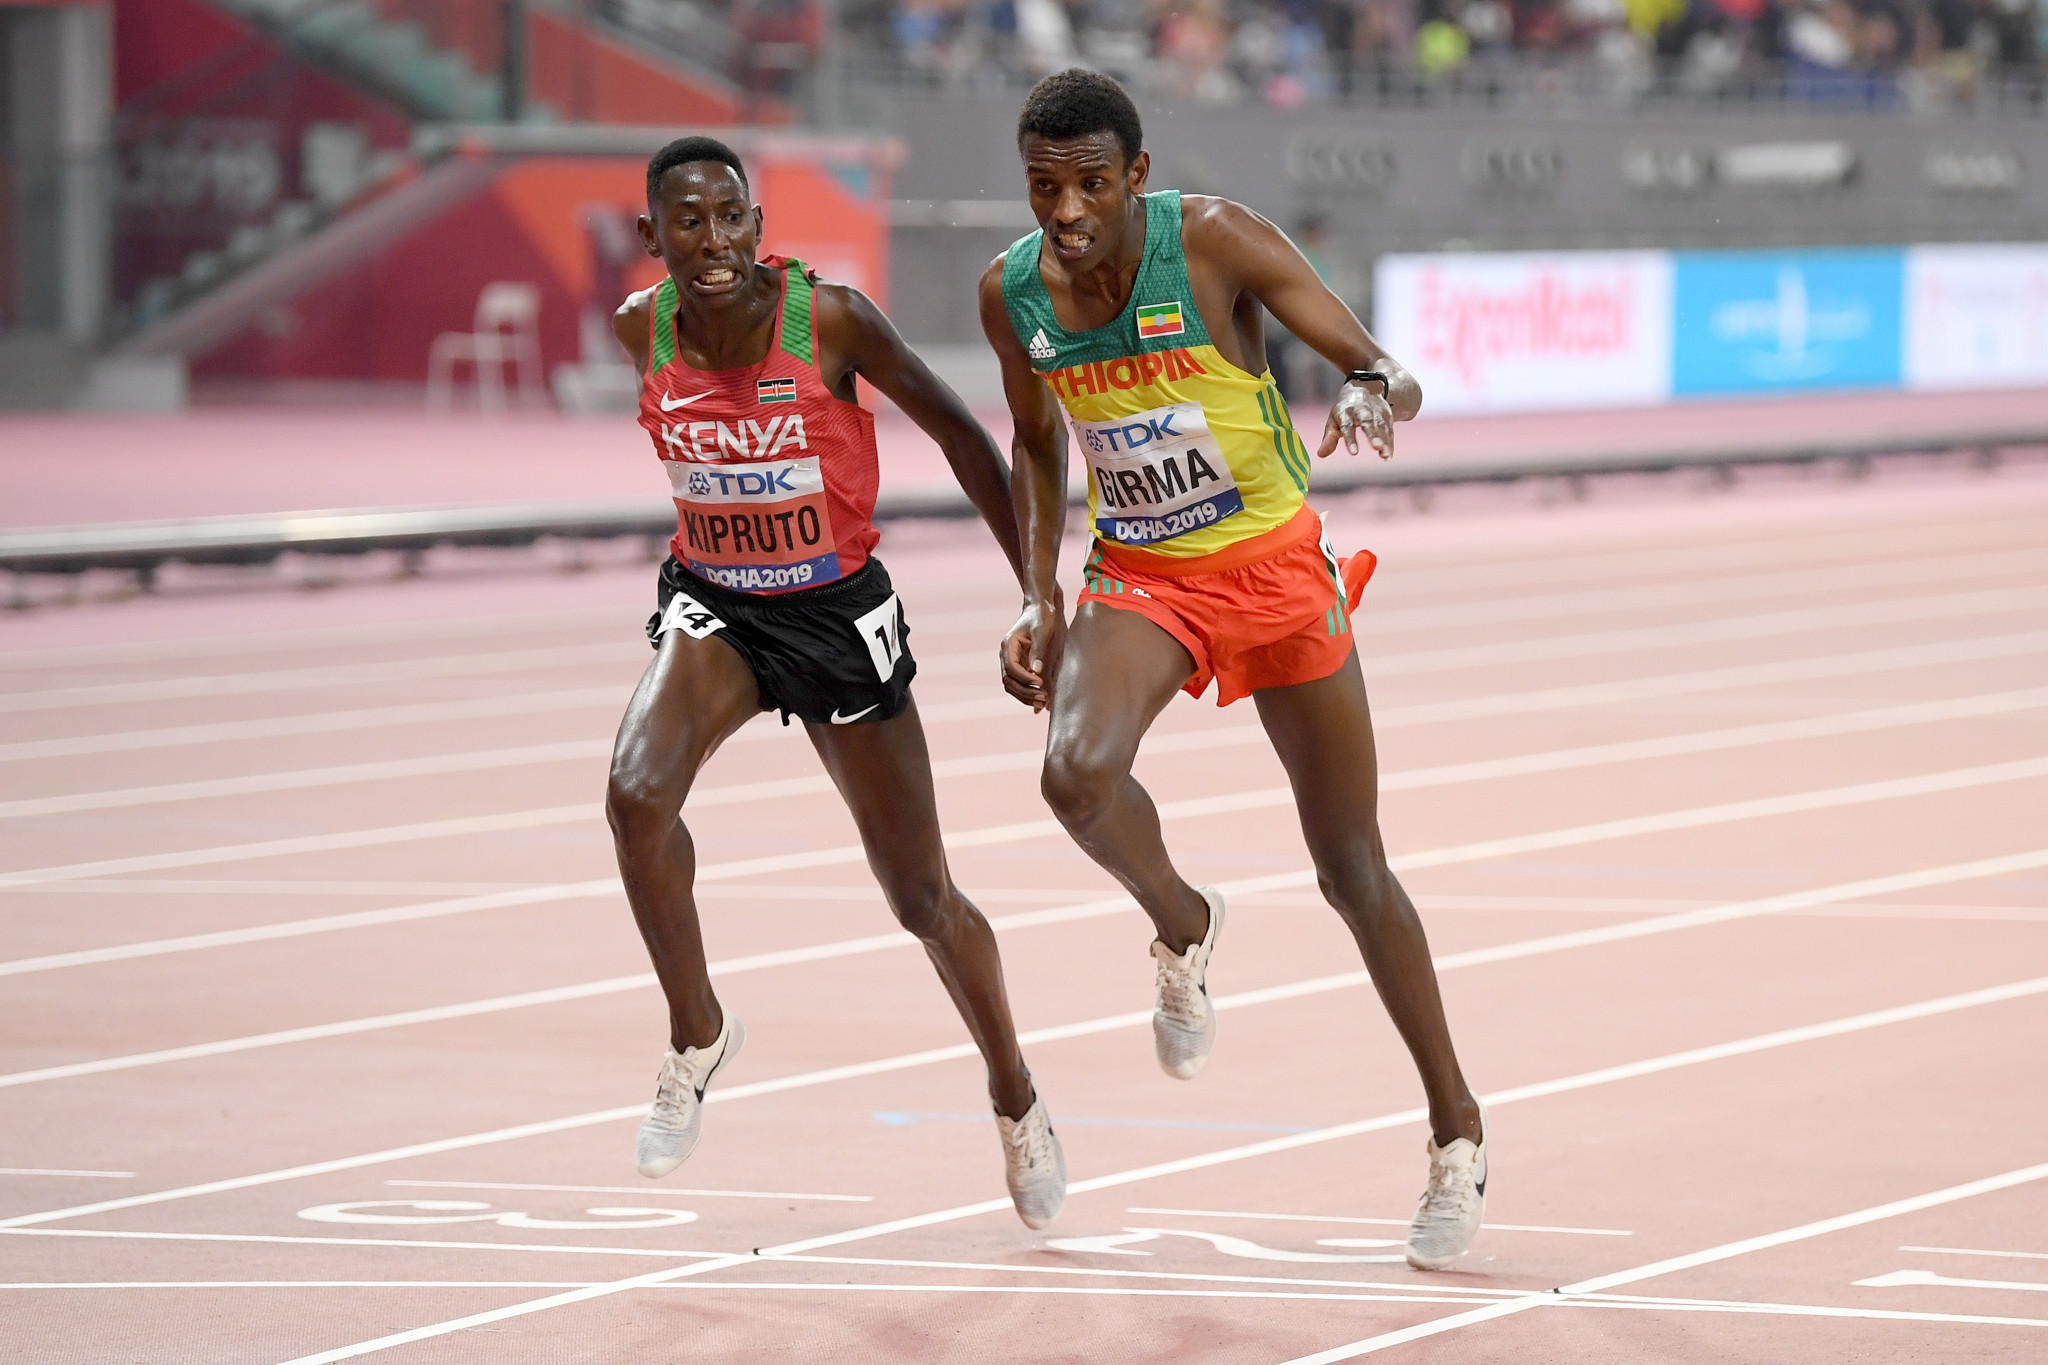 The men's 3,000m steeplechase produced an exciting finish with Kenya's Conseslus Kipruto beating Ethiopia's Lamecha Girma by just one-hundredth of a second ©Getty Images